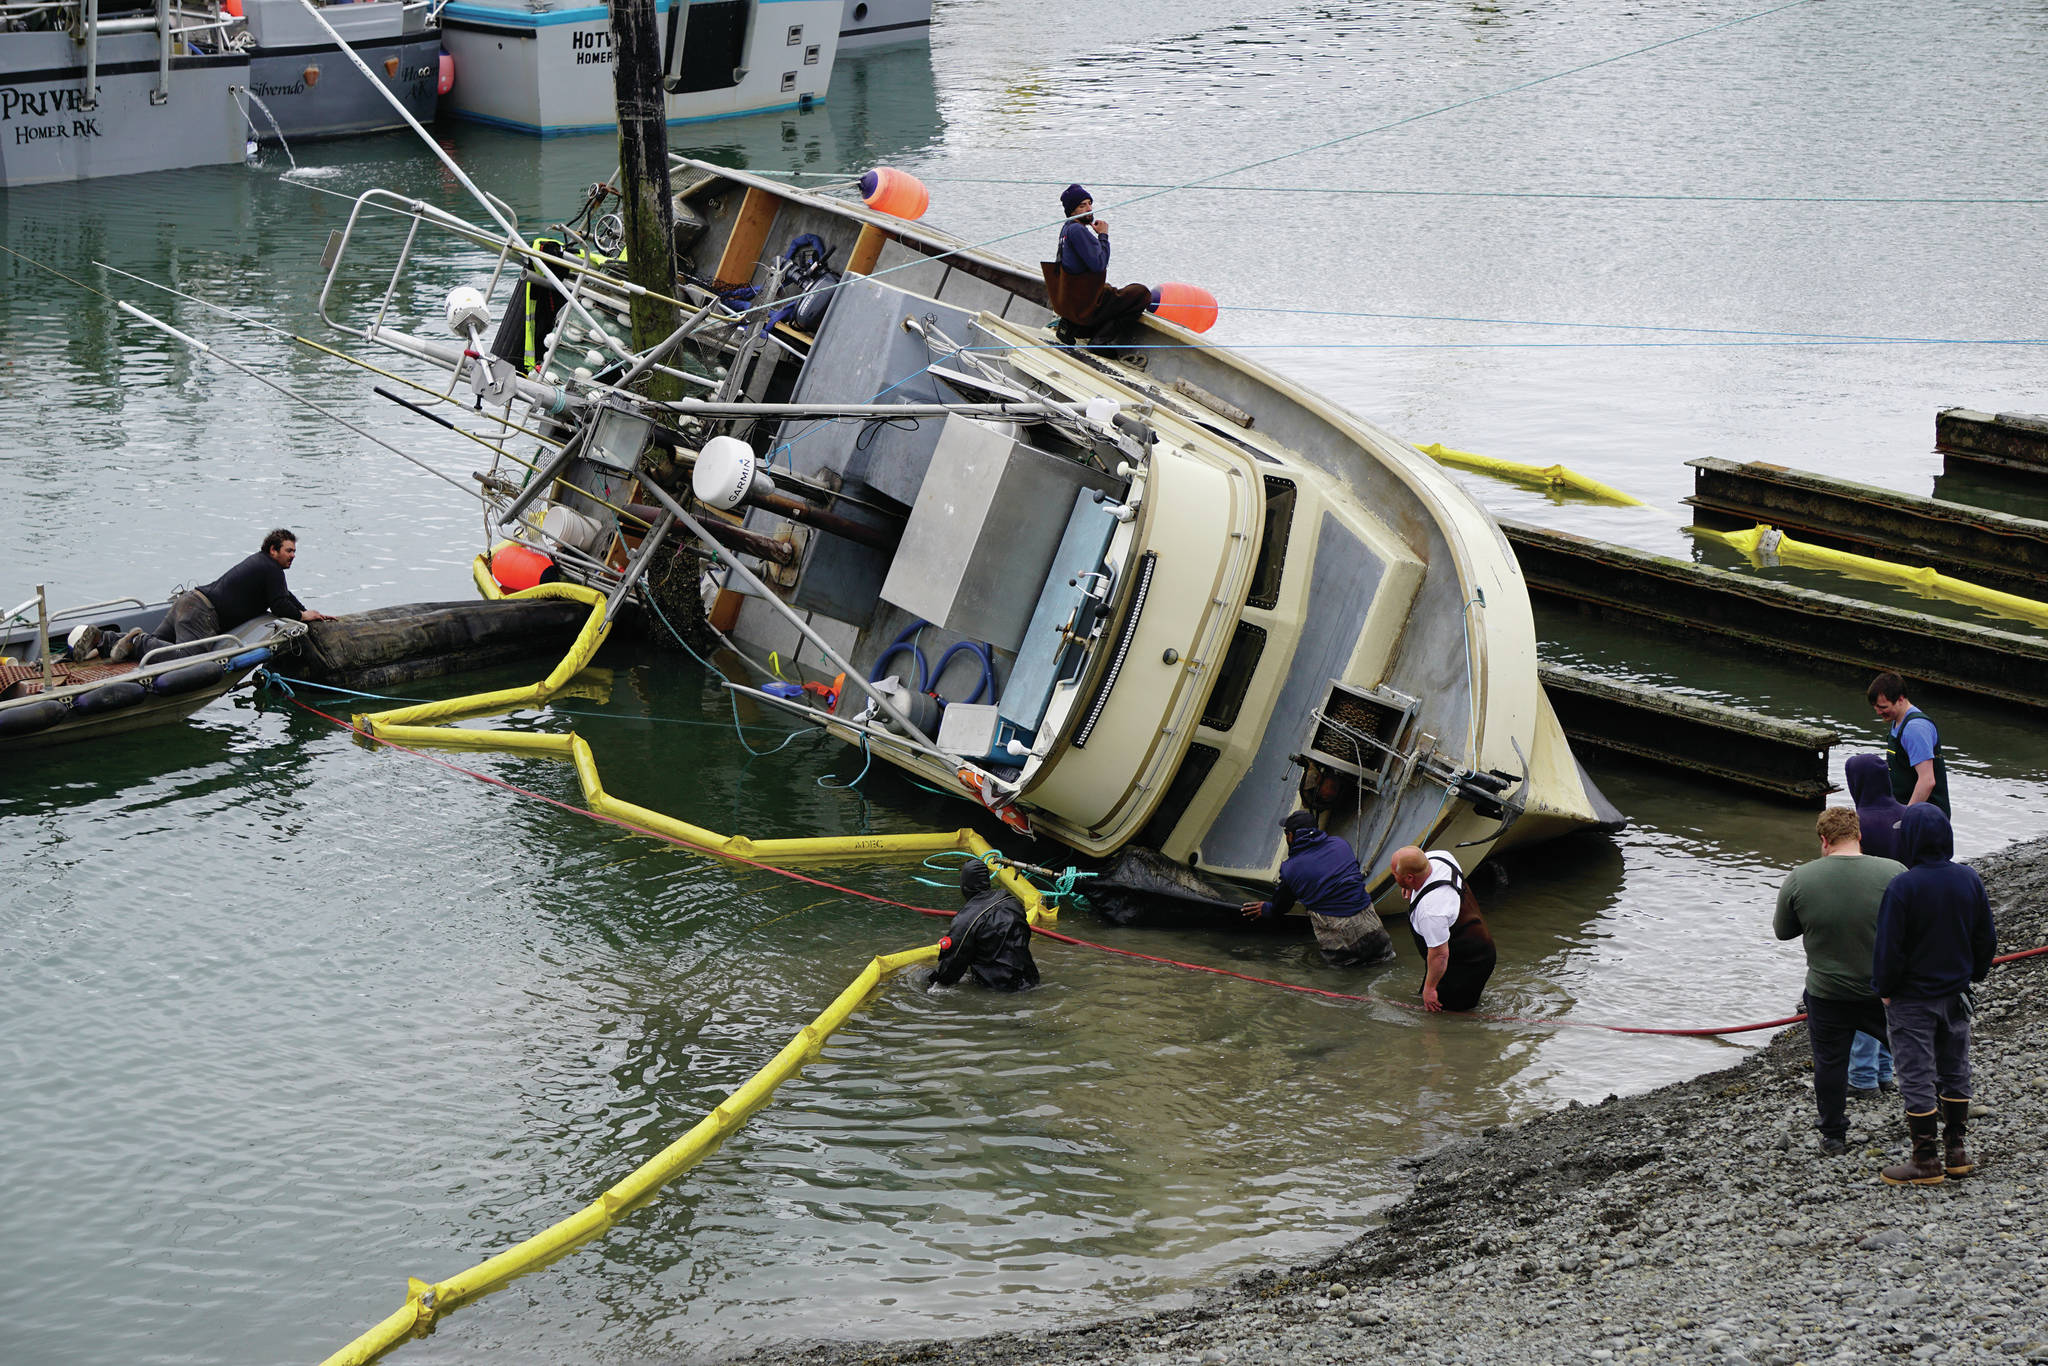 Workers respond to a fishing boat, the F/V Redoubt, that ran aground on the wooden grid on Wednesday, June 2, 2021, in the Homer Harbor in Homer, Alaska. The boat heeled over as the tide went out. (Photo by Michael Armstrong/Homer News)